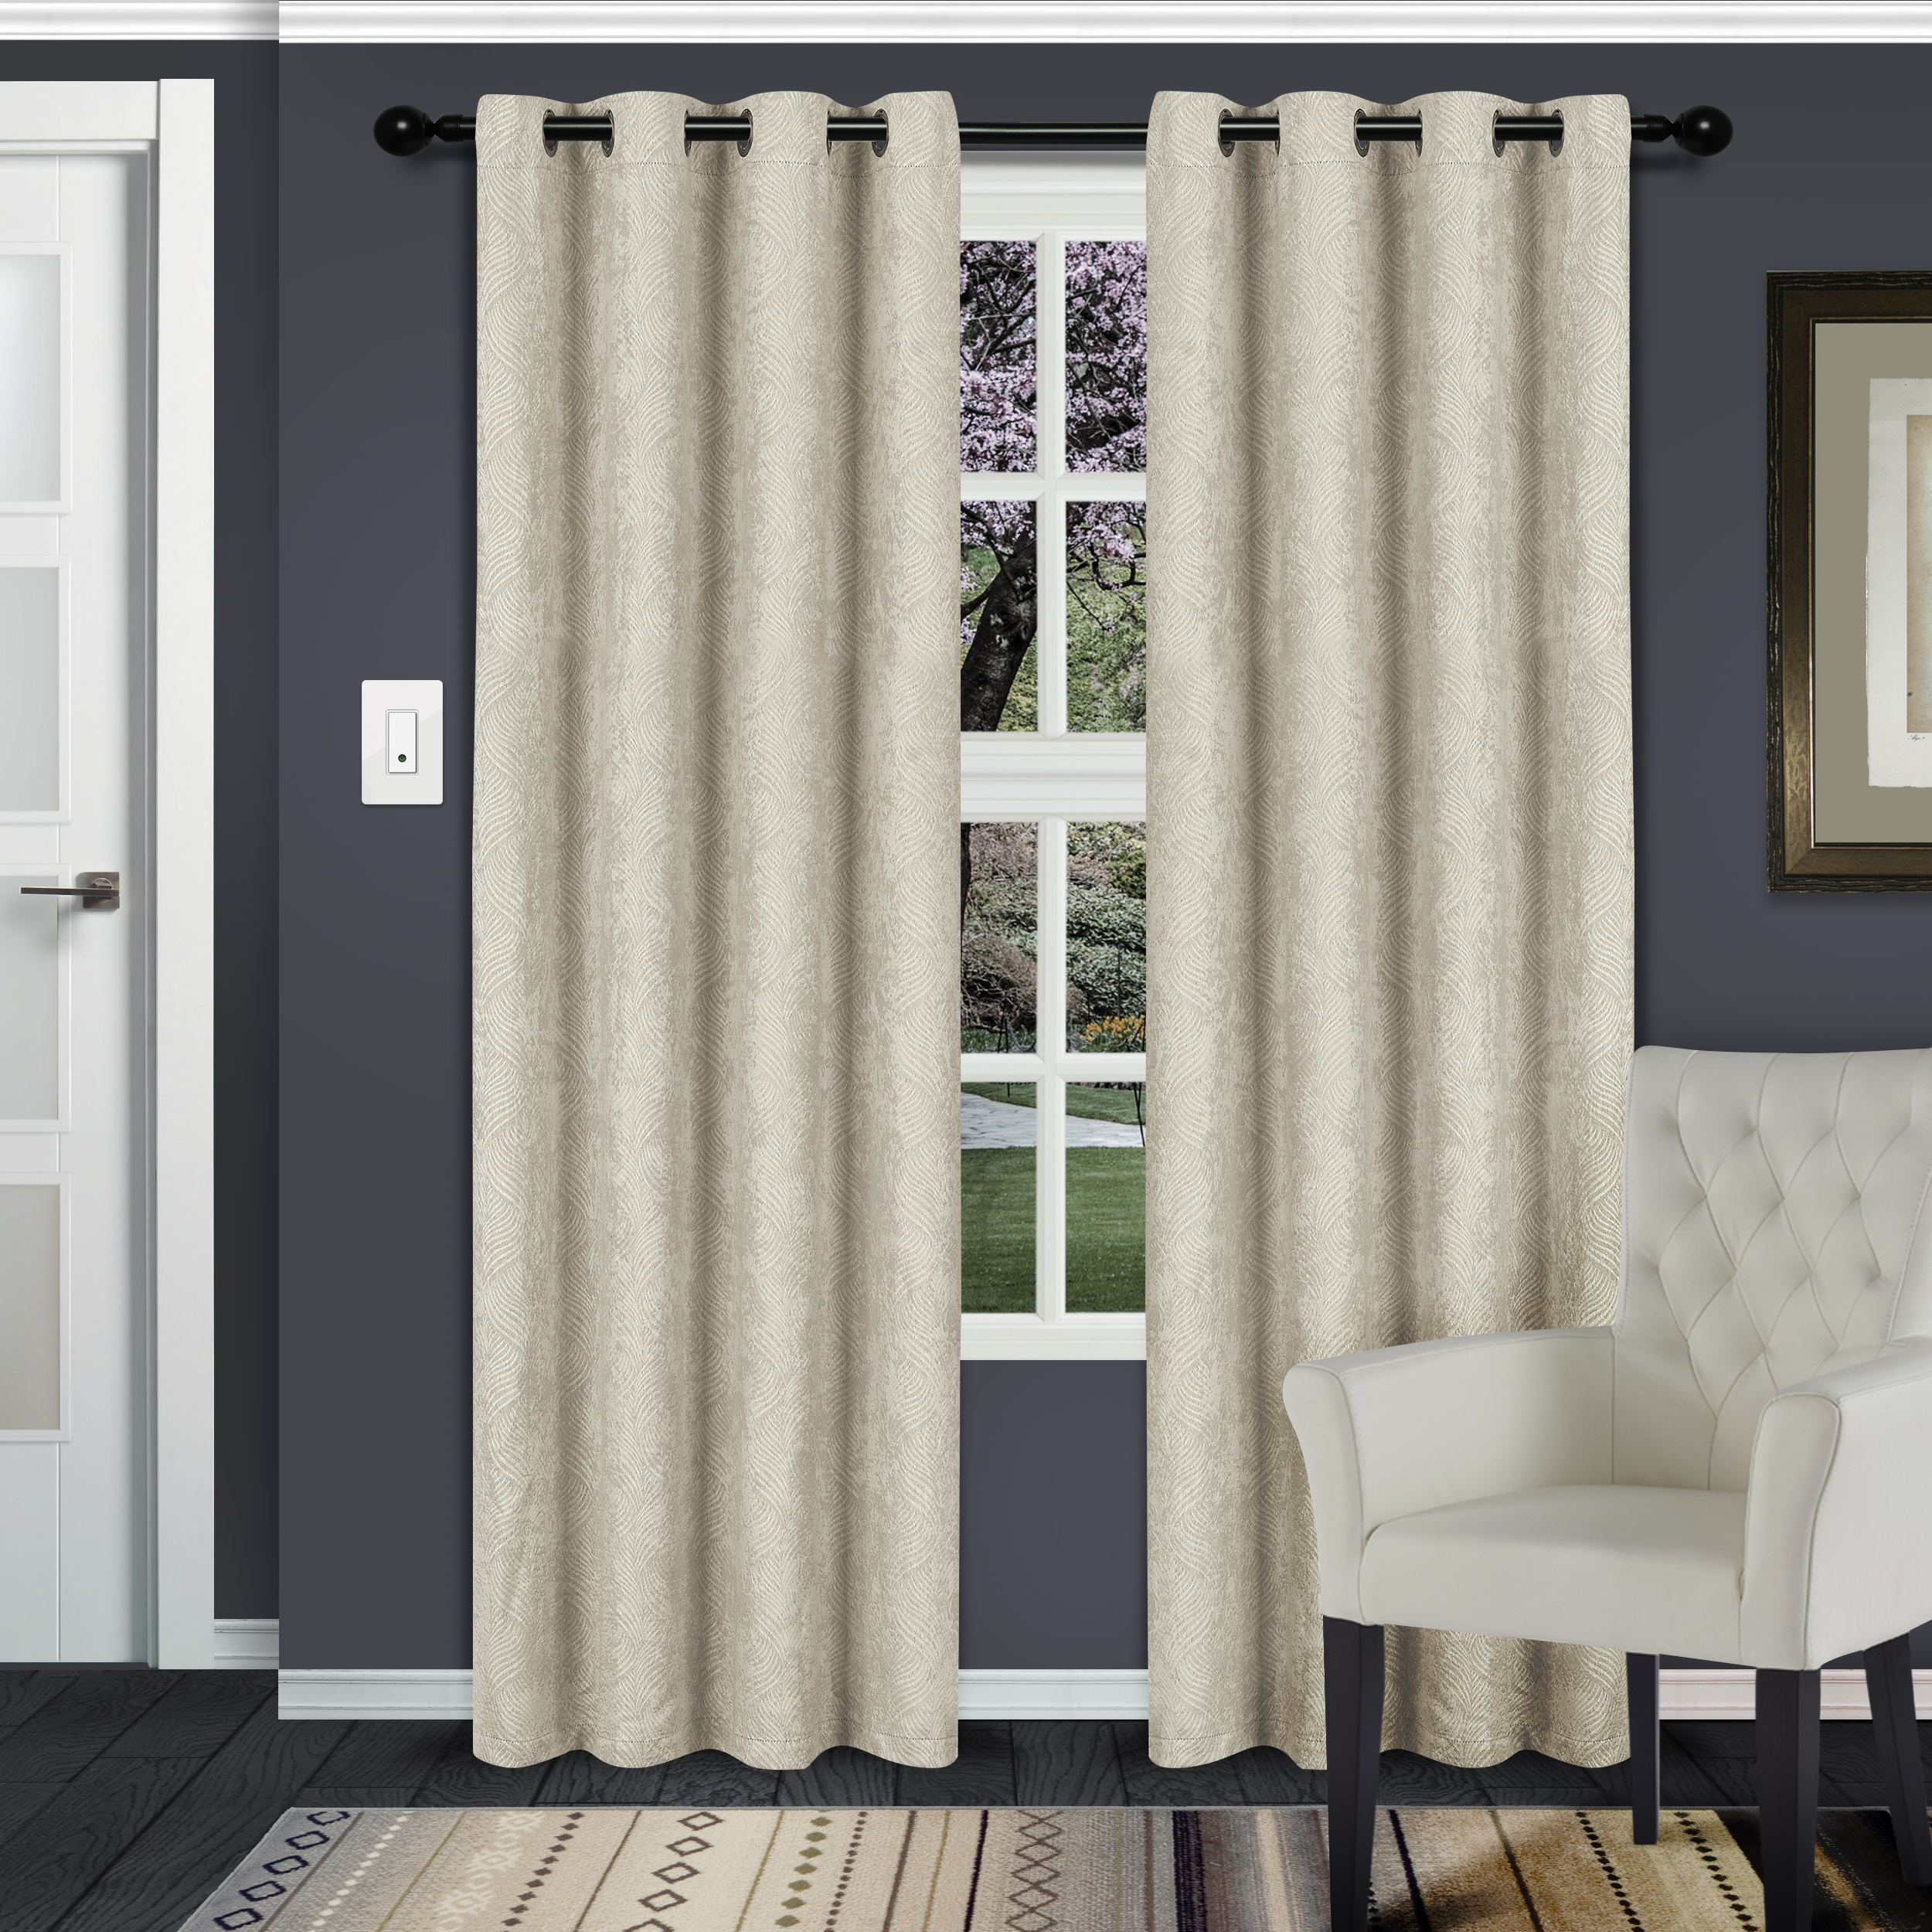 Superior Waverly Textured Blackout Curtain Set of 2, Insulated Panels with Grommet Top